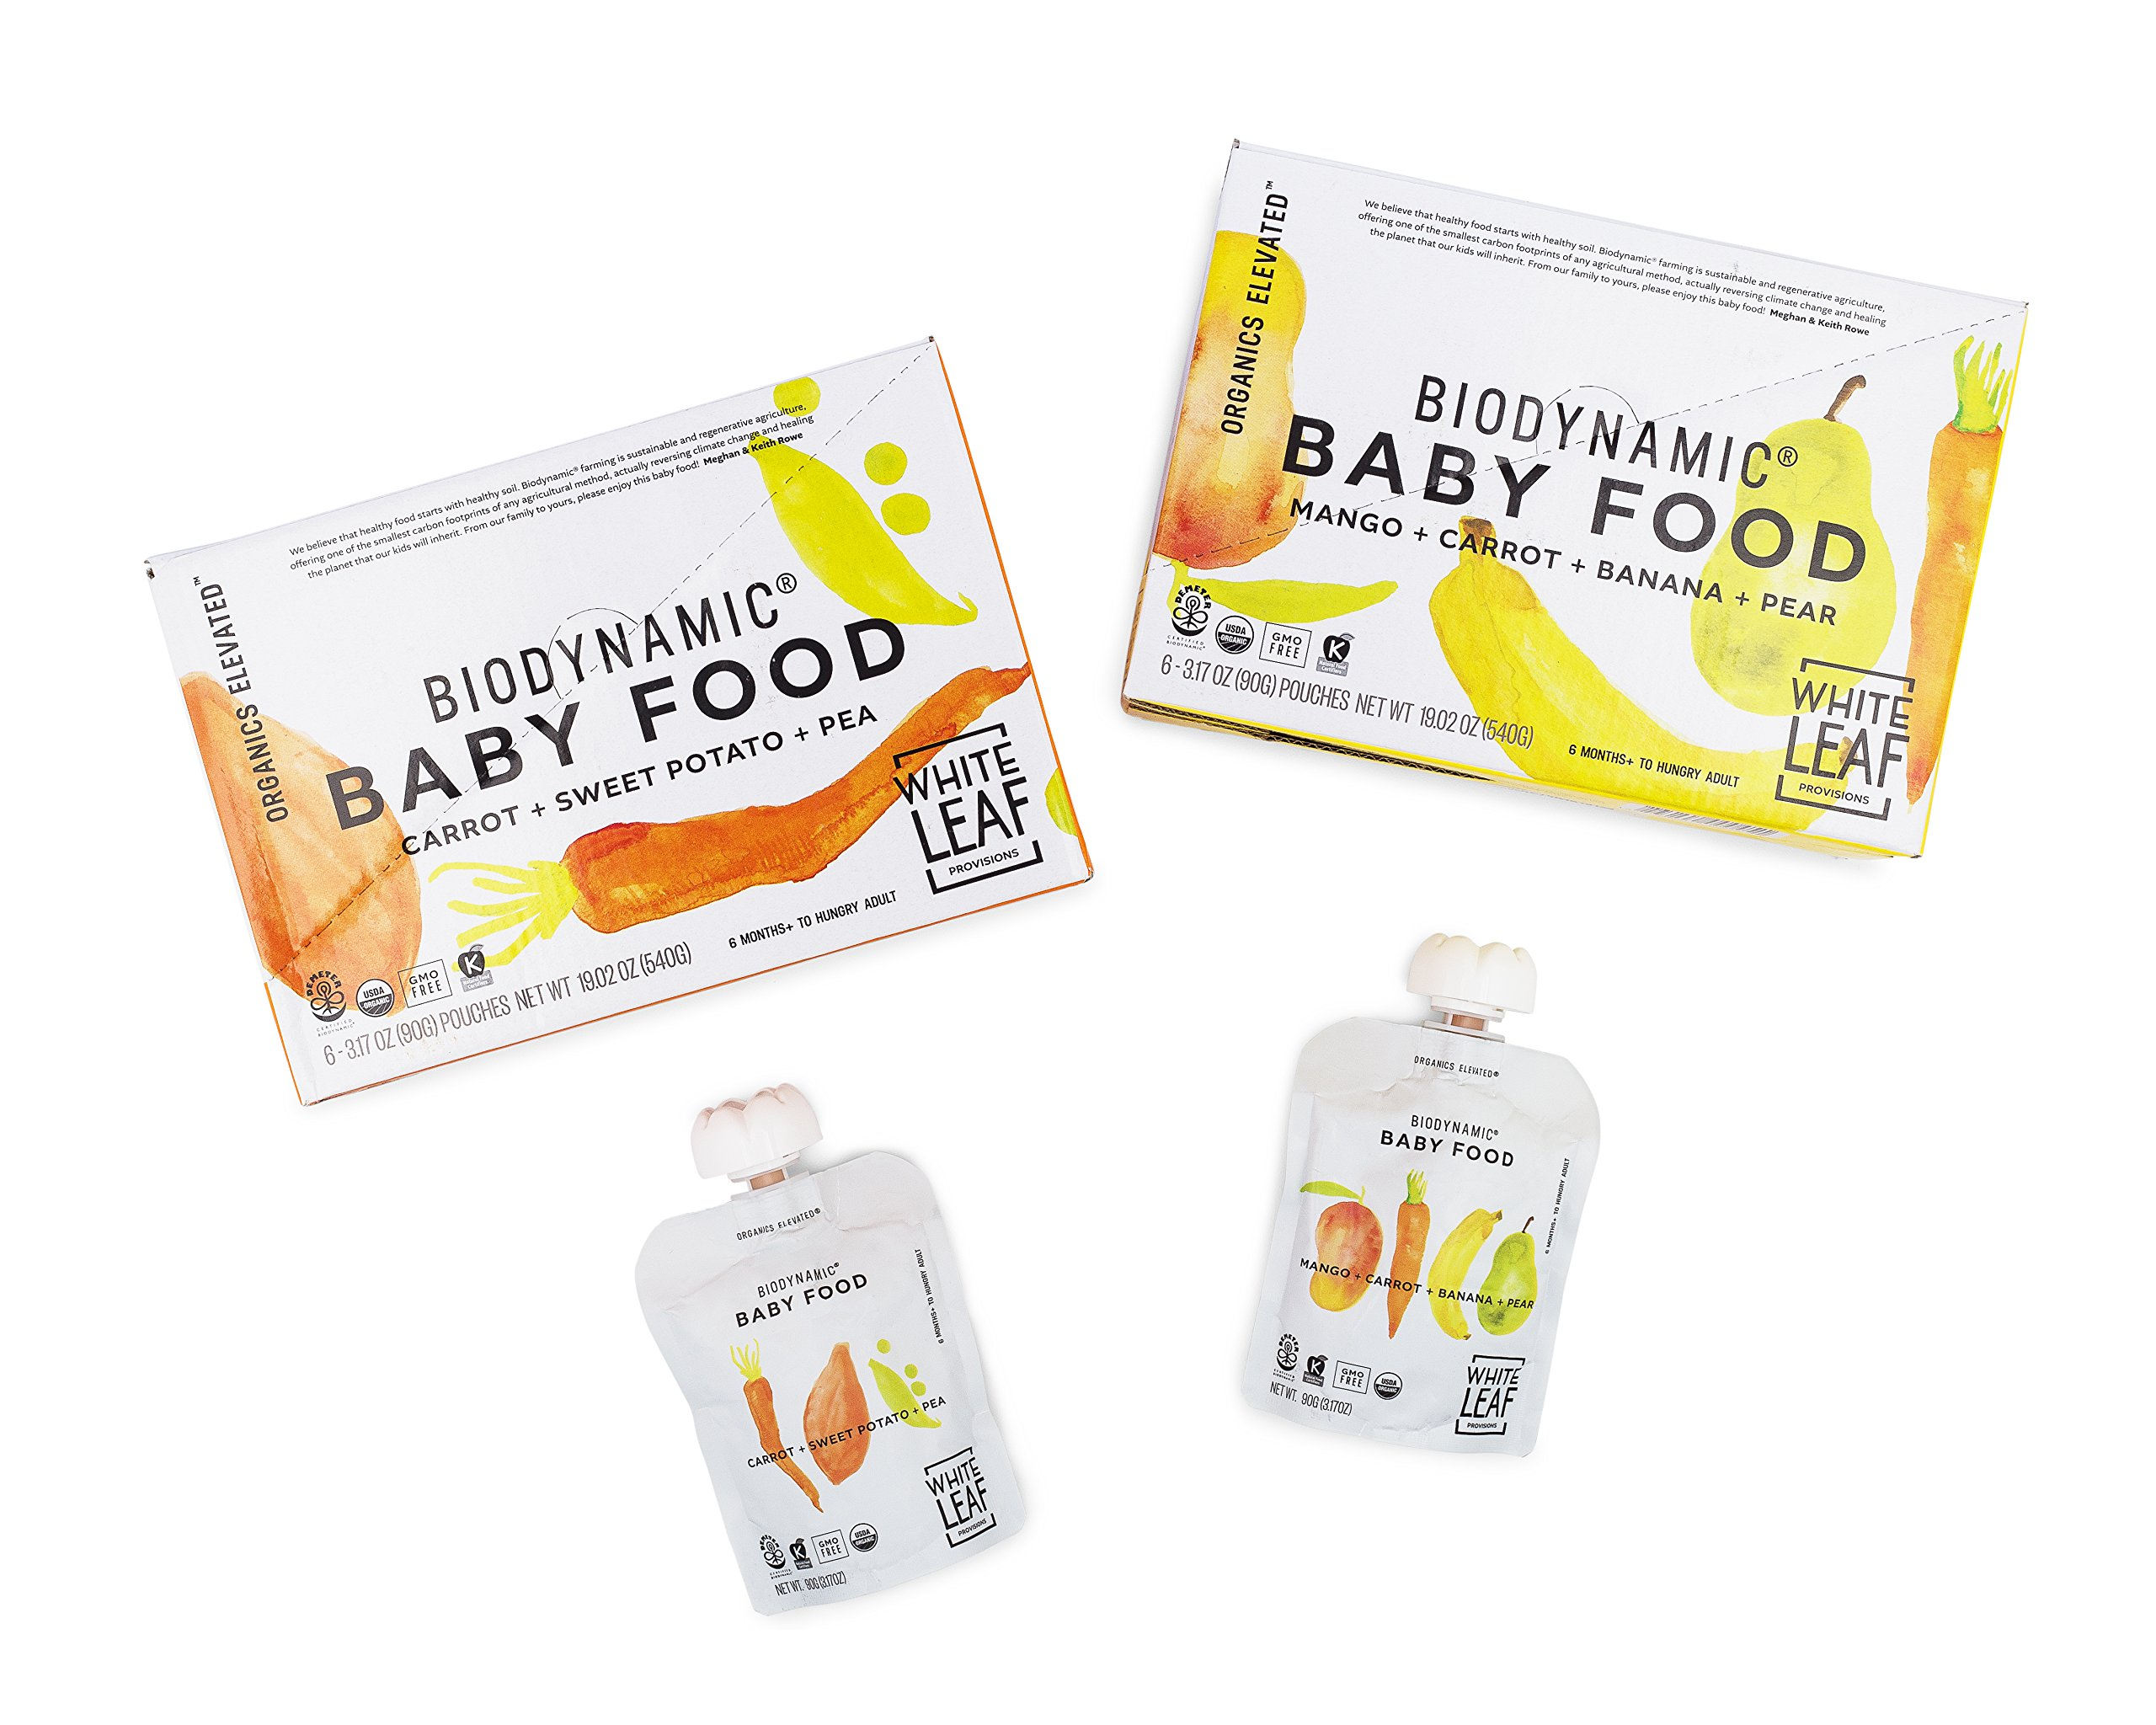 White Leaf Provisions Organic Biodynamic Baby Food 6 Pouches each Mango, Carrot, Banana & Pear and Organic Biodynamic Baby Food - Carrot, Sweet Potato & Pea